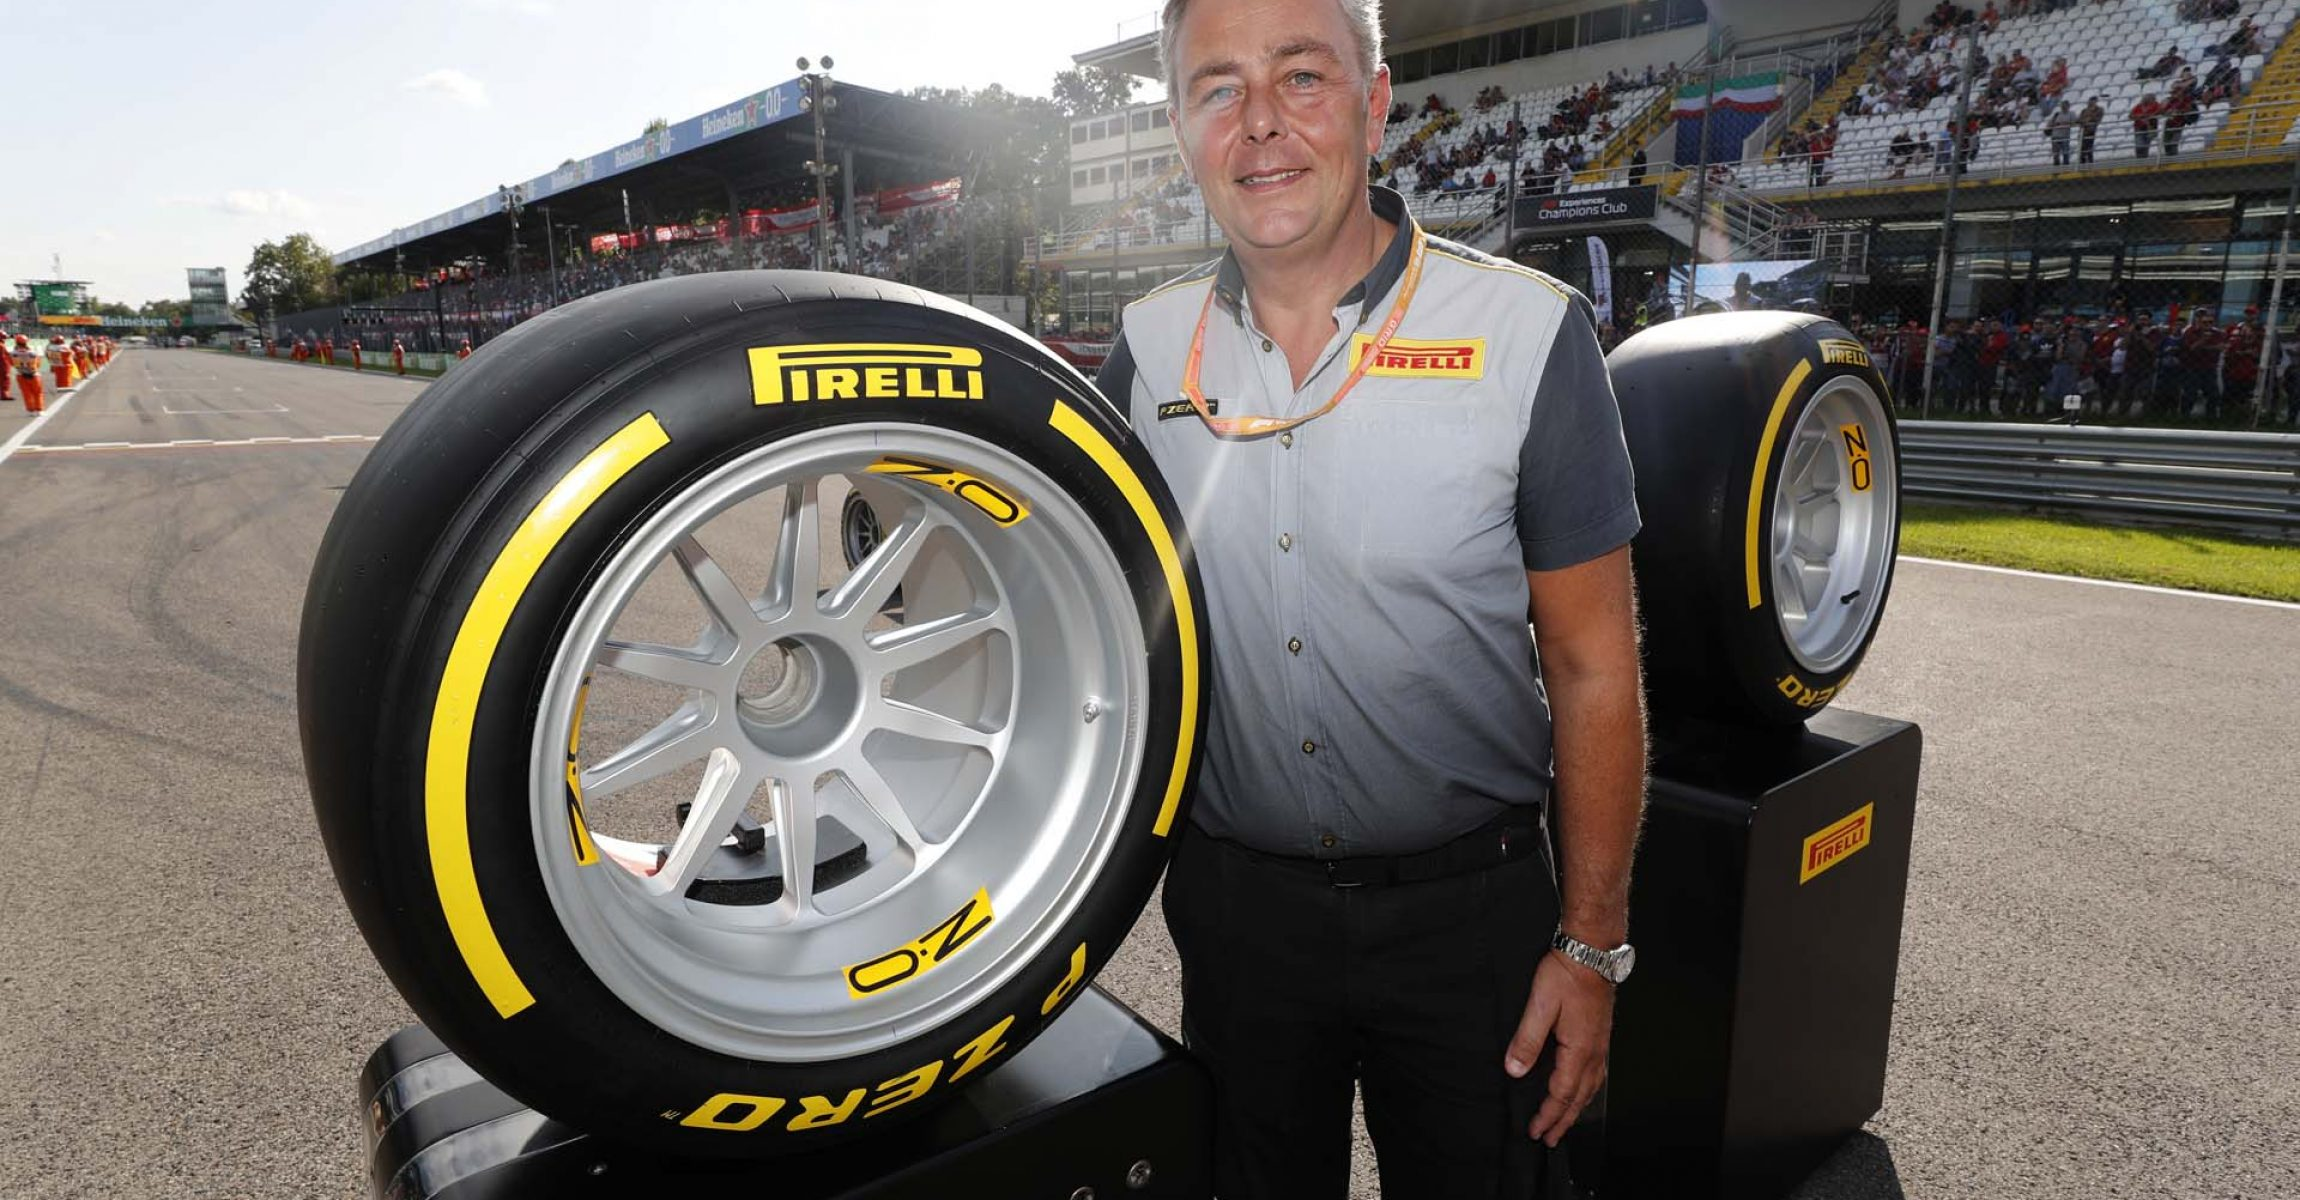 AUTODROMO NAZIONALE MONZA, ITALY - SEPTEMBER 07: Jean Alesi tests the new Pirelli 18 inch tyres for next seasons F2 Car during the Italian GP at Autodromo Nazionale Monza on September 07, 2019 in Autodromo Nazionale Monza, Italy. (Photo by Steven Tee / LAT Images)